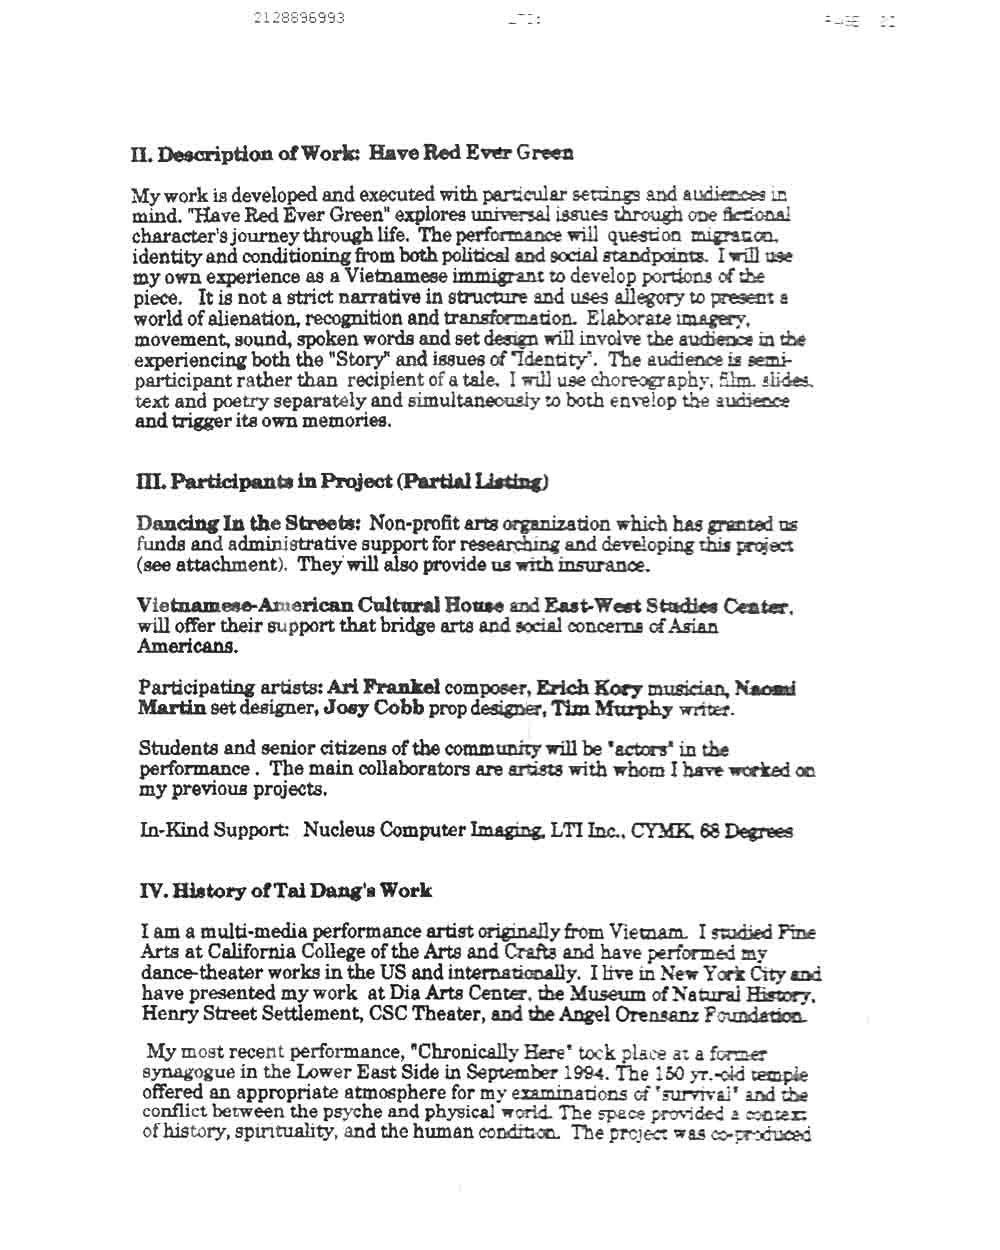 Tai Dang's Proposal, pg 2